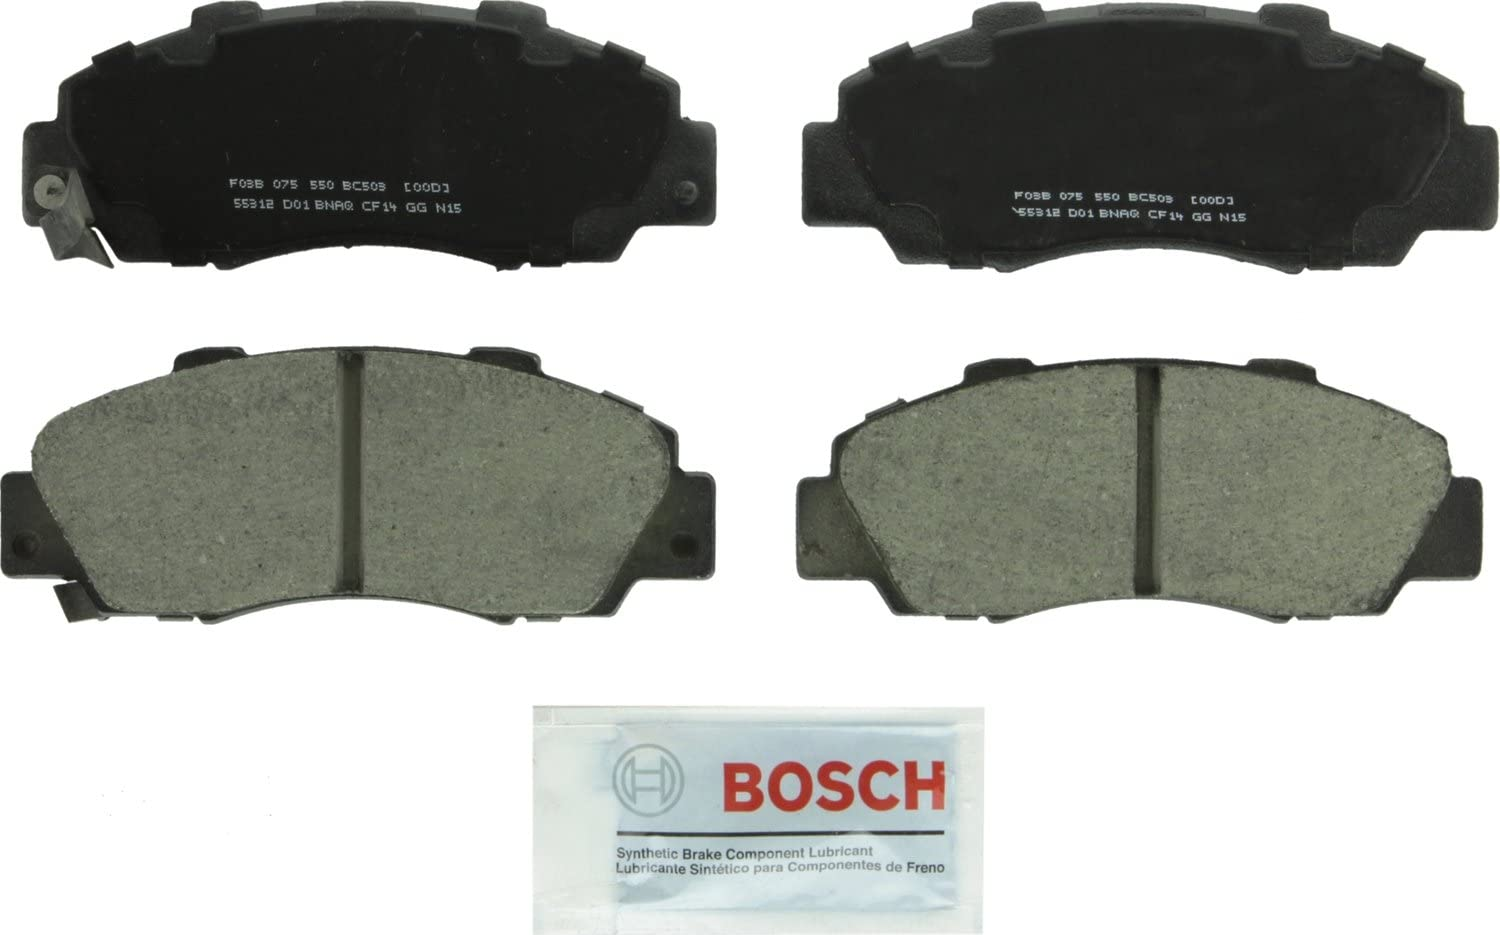 FRONT BRAKE PADS for HONDA ACURA EL ACCORD CIVIC INSIGHT Premium Brake Pads